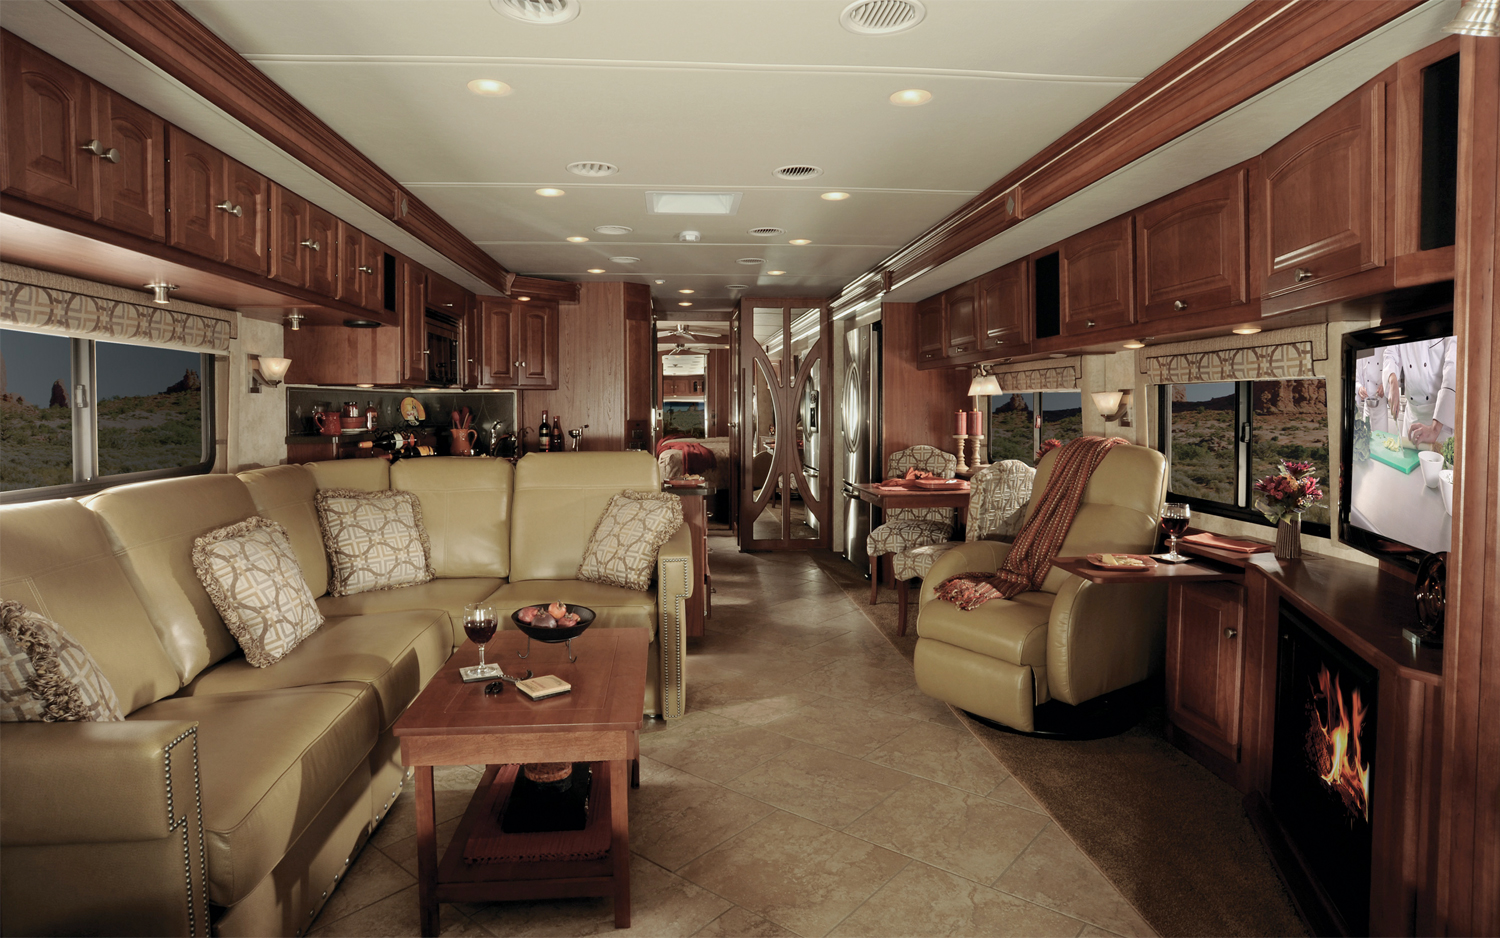 Winnebago journey photo - 1